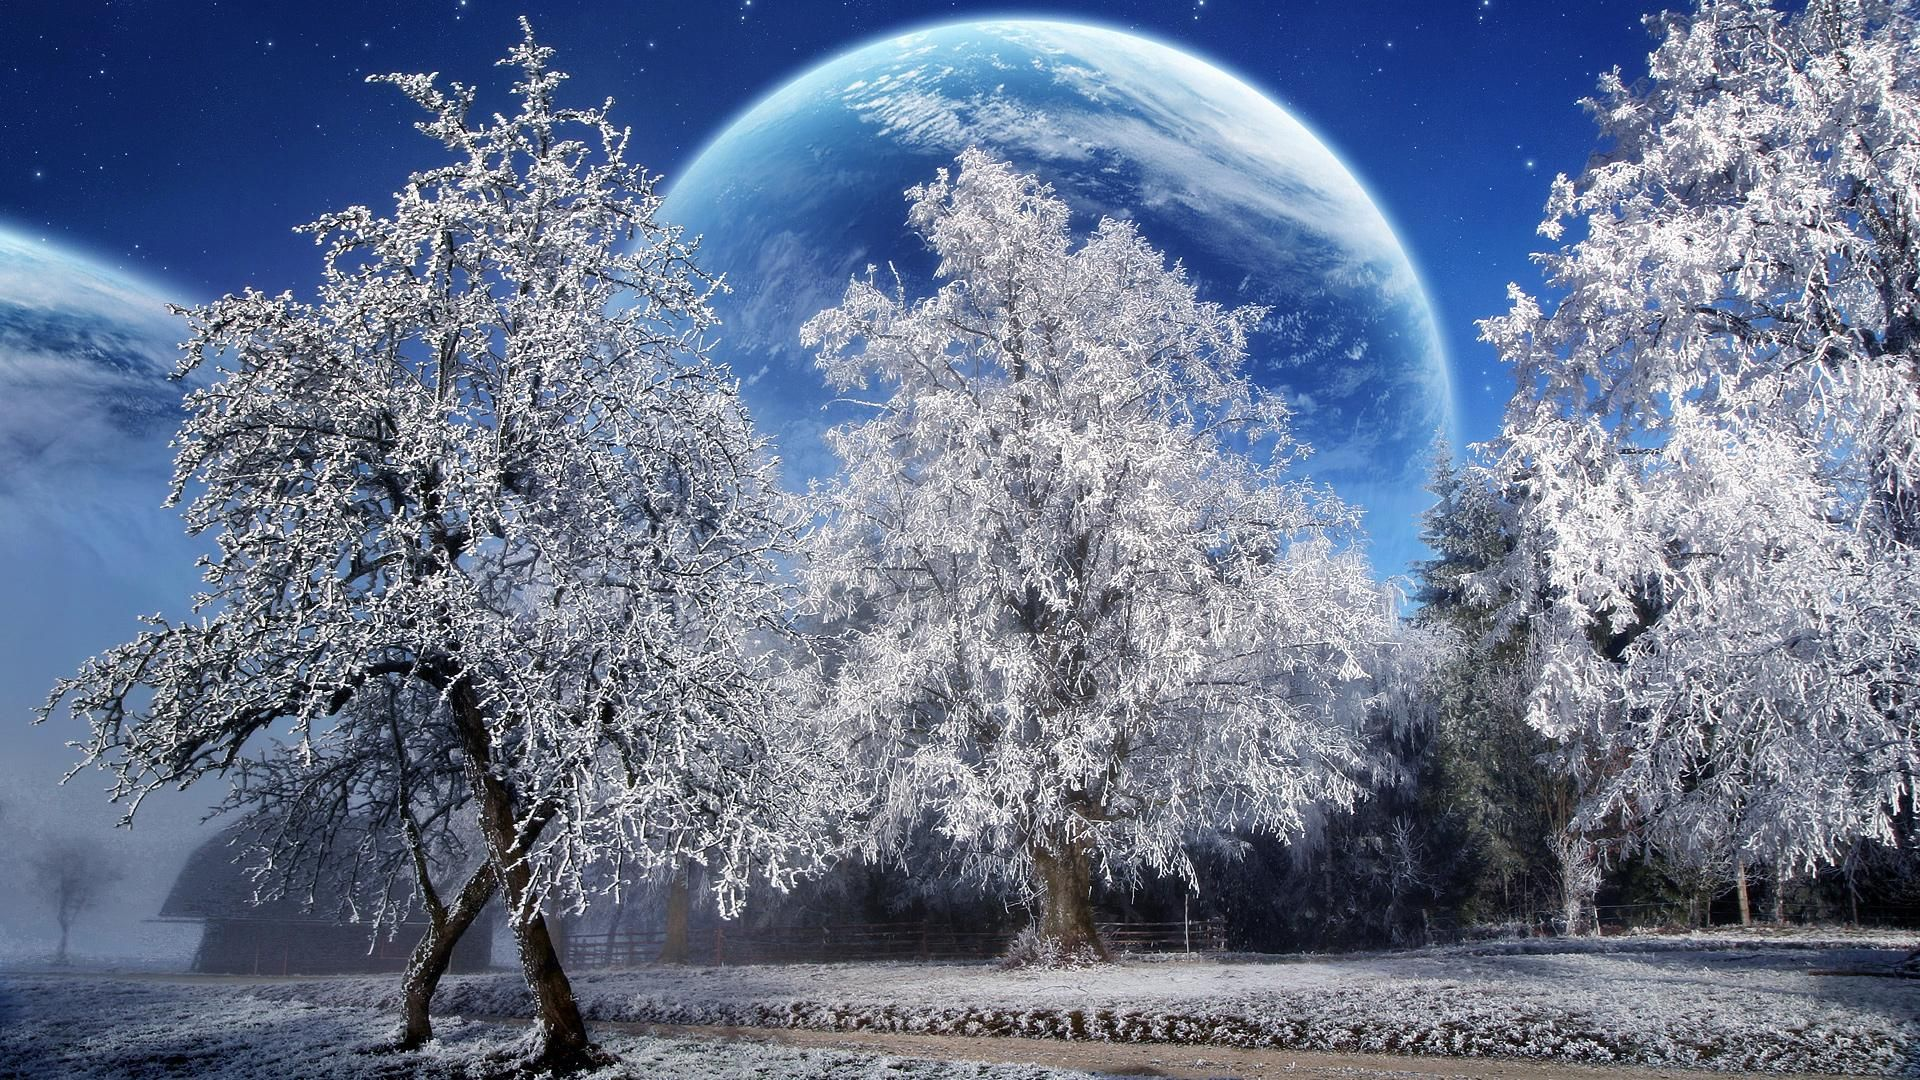 Beautiful Wallpapers 1920x1080 Hd Wallpapers And Pictures Winter Pictures Winter Scenery Winter Wallpaper